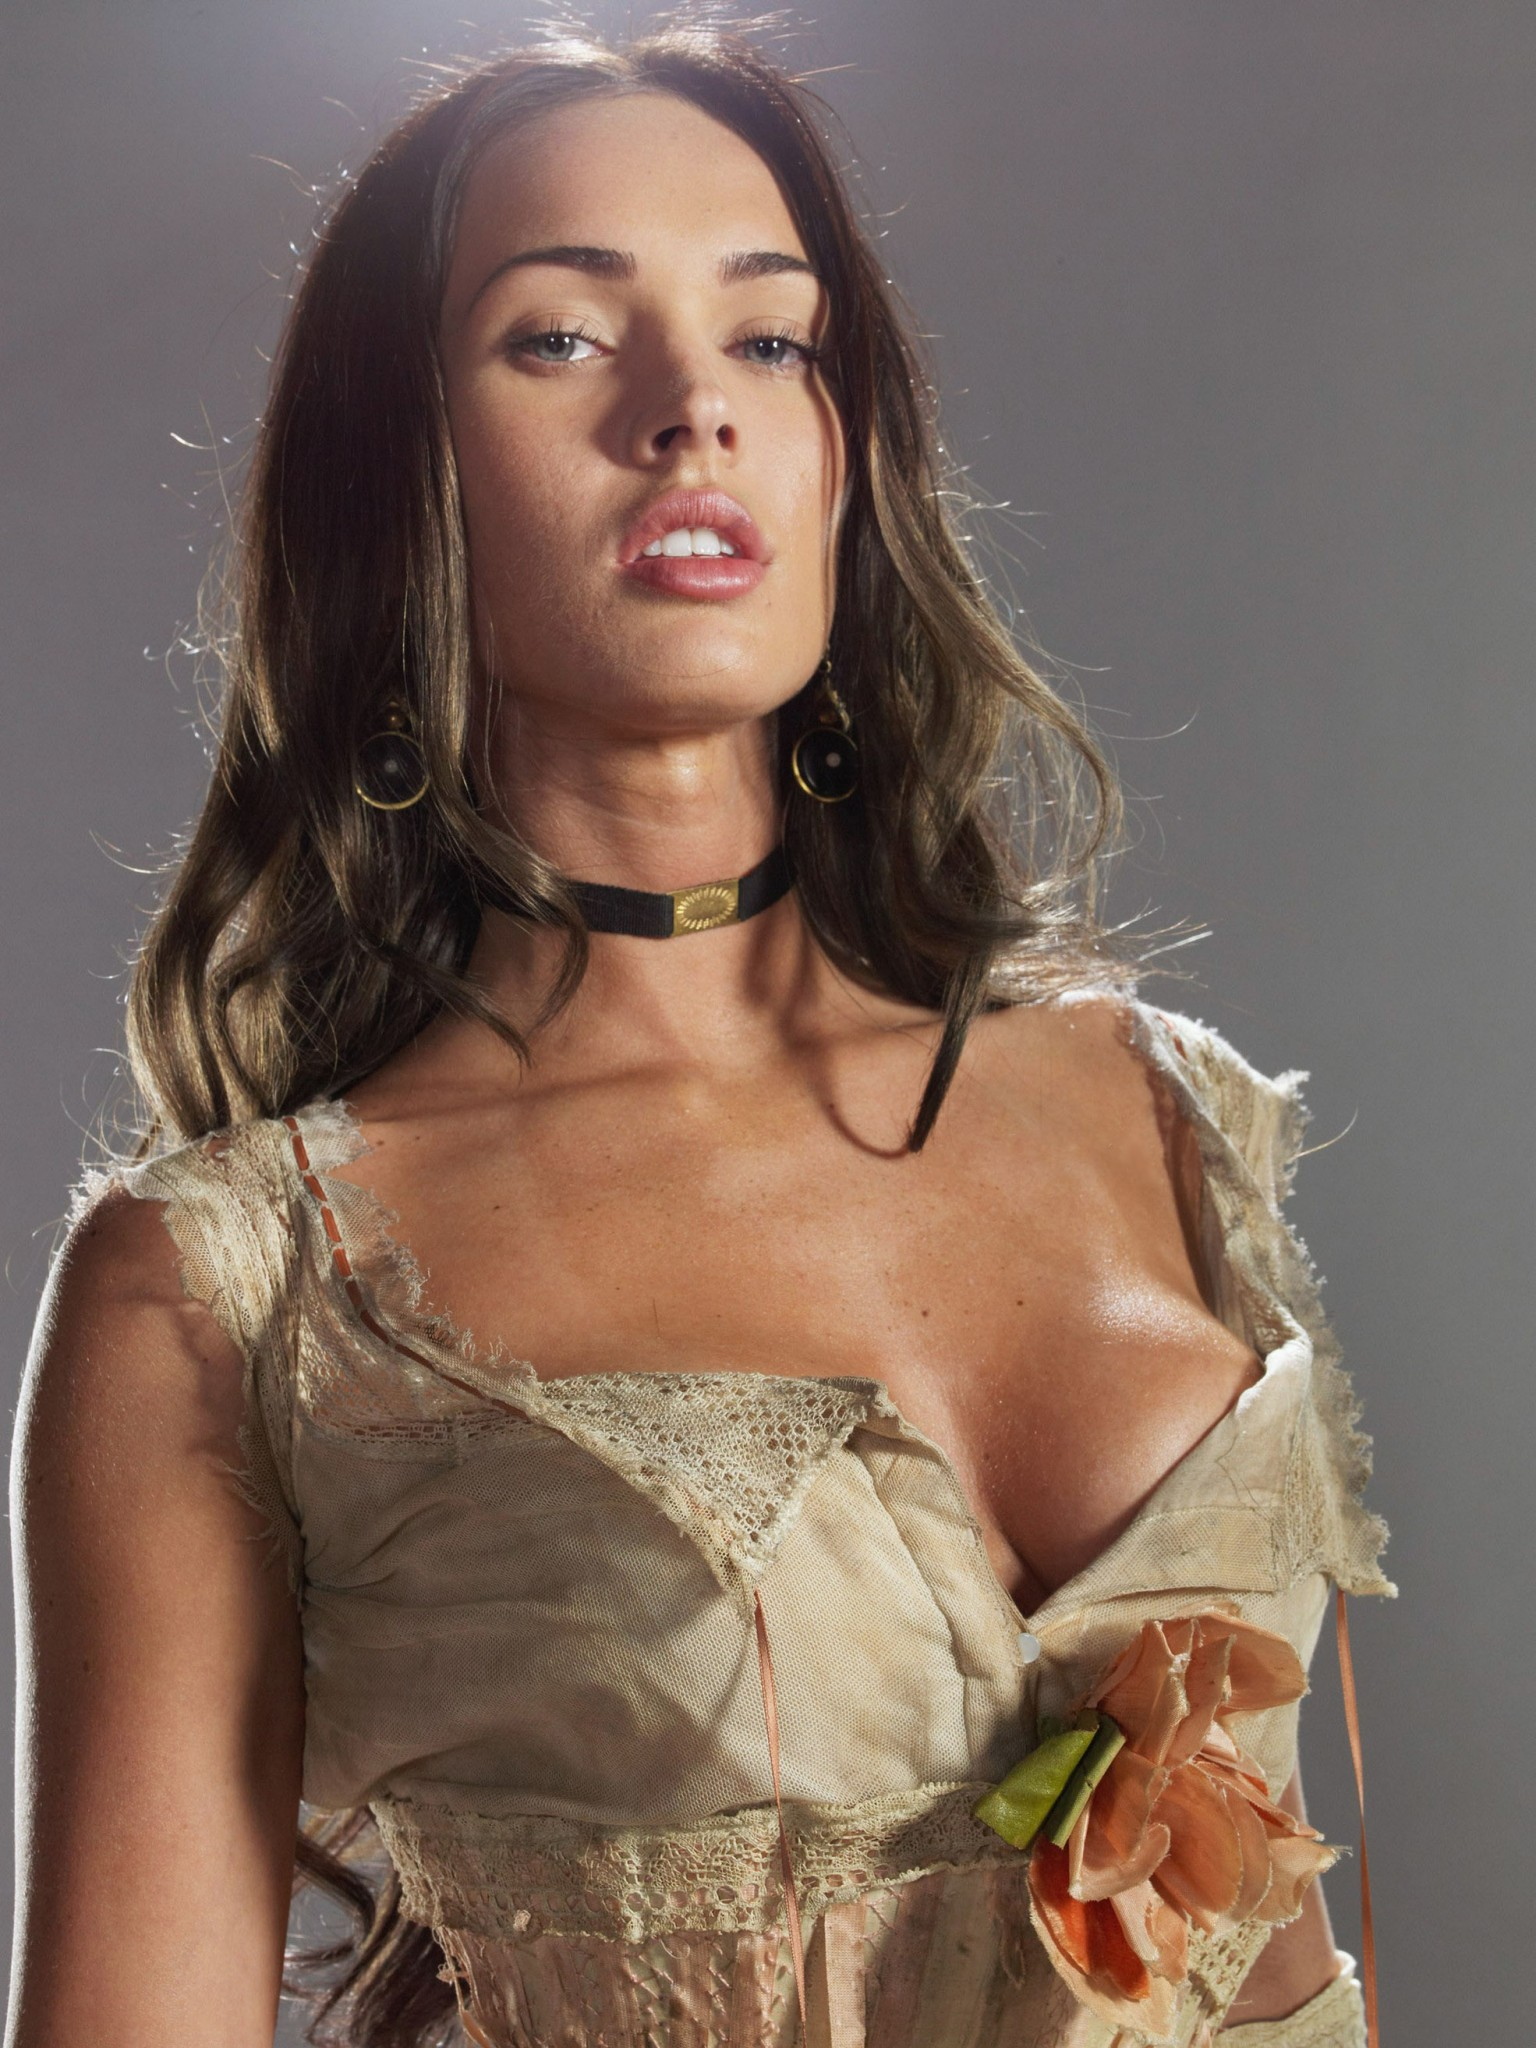 [Image: megan-fox-jonah-hex-photoshoot-21-1536x2048.jpg]